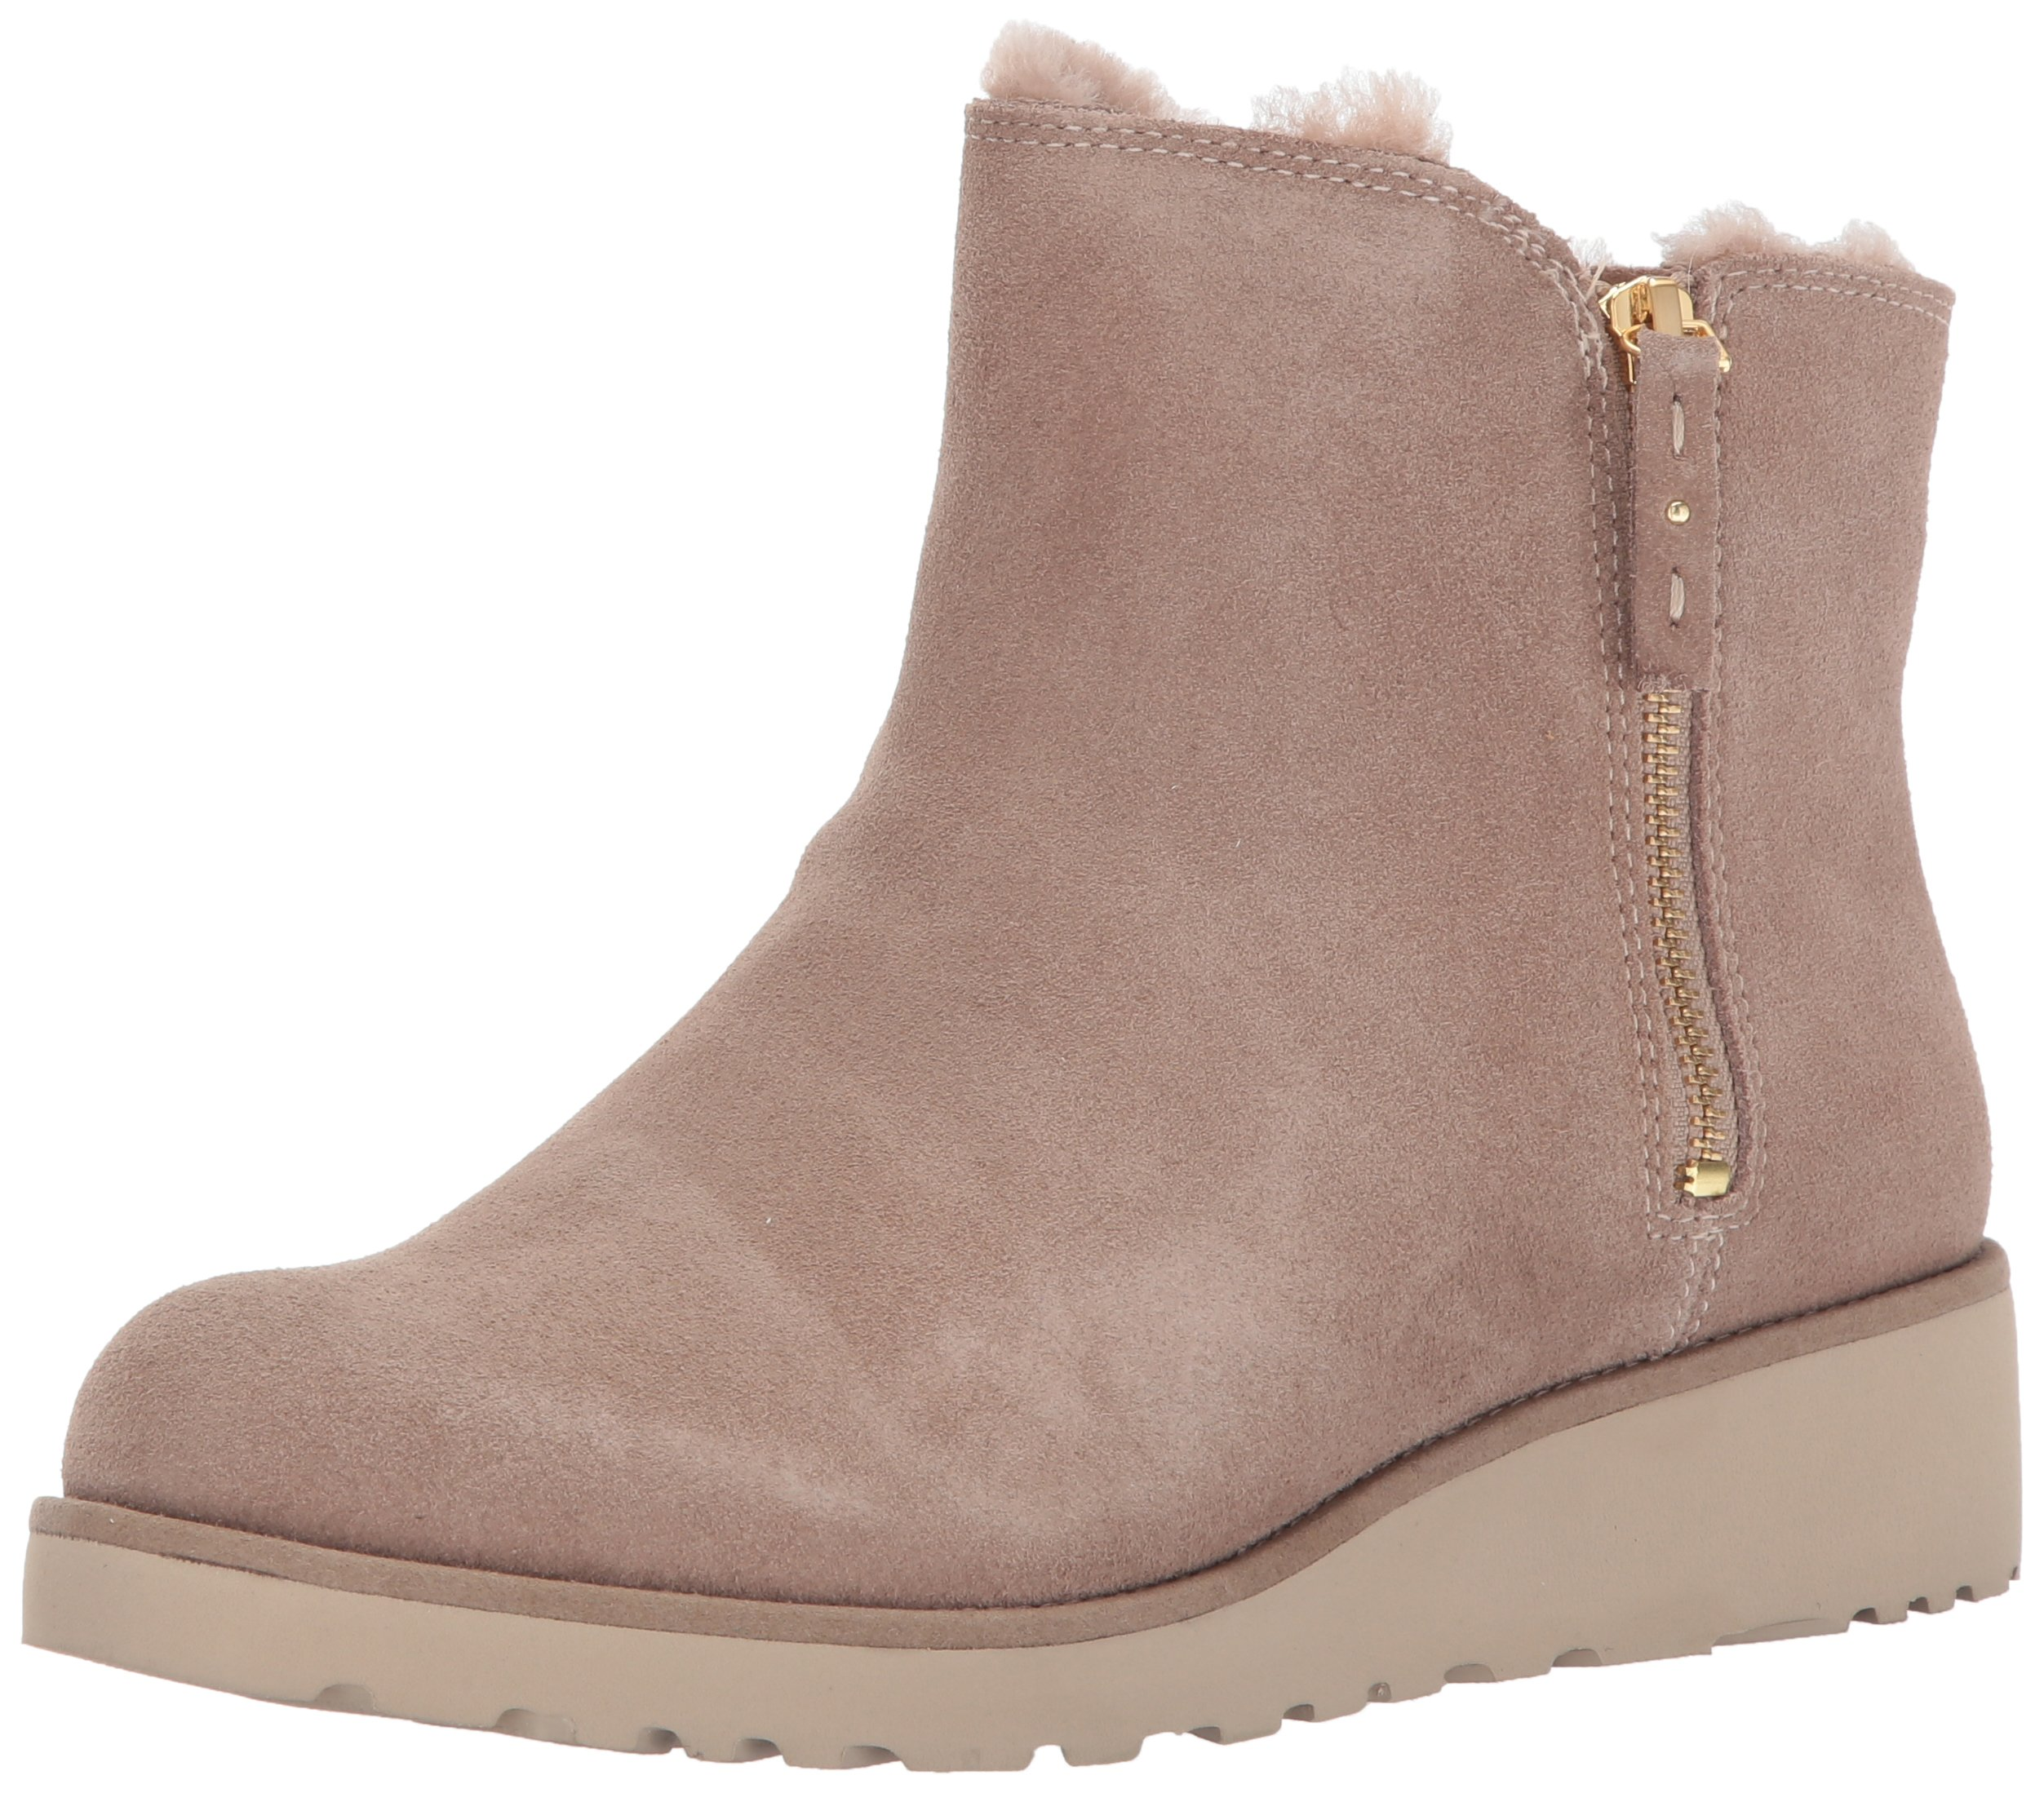 UGG Women's Shala Slouch Boot, Fawn, 8.5 M US